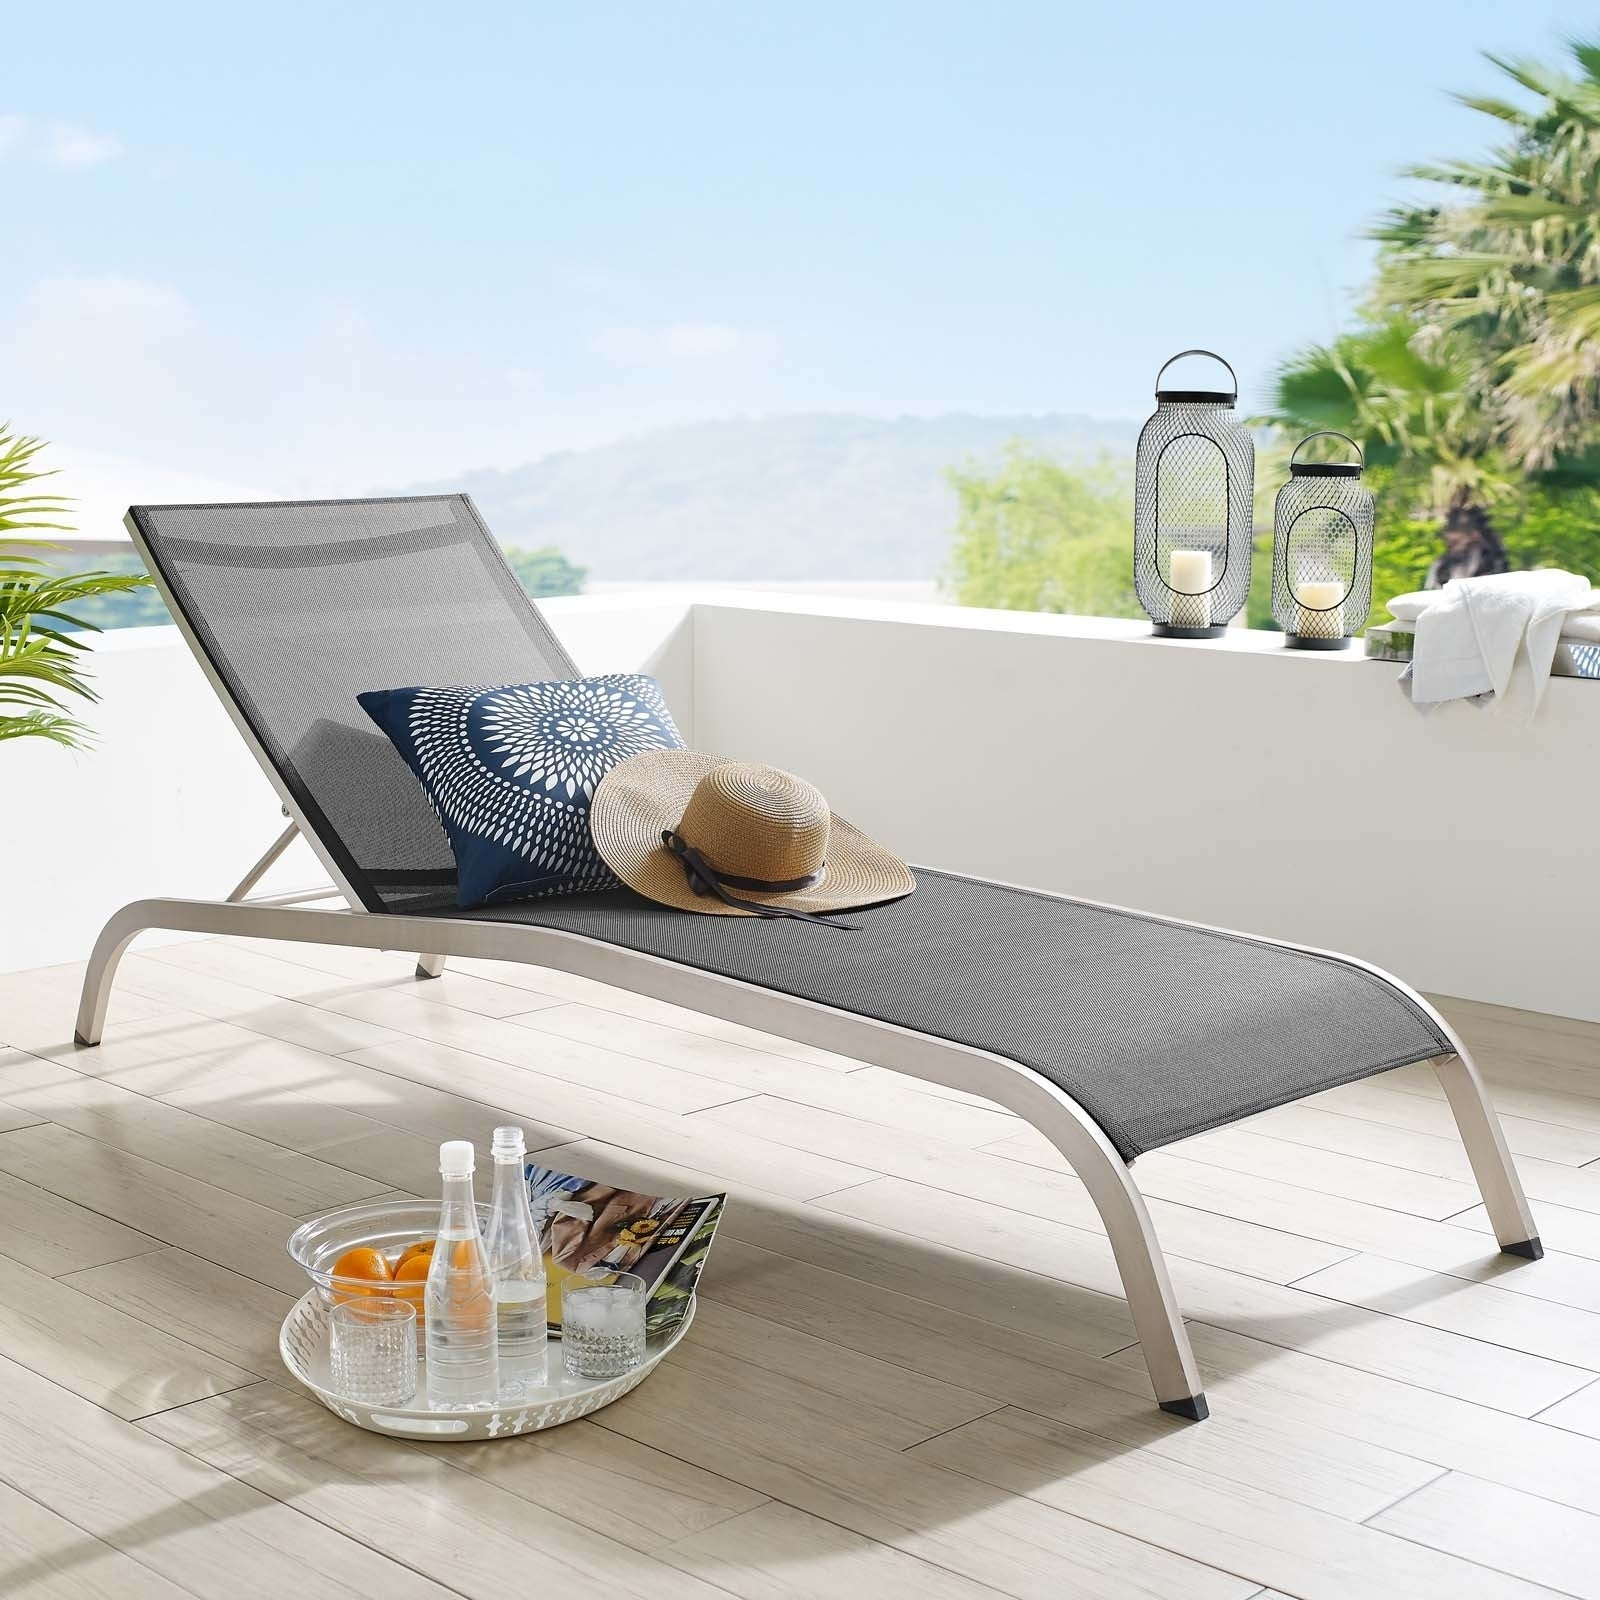 Savannah Outdoor Patio Mesh Chaise Outdoor Patio Lounge Chair Overstock 29168203